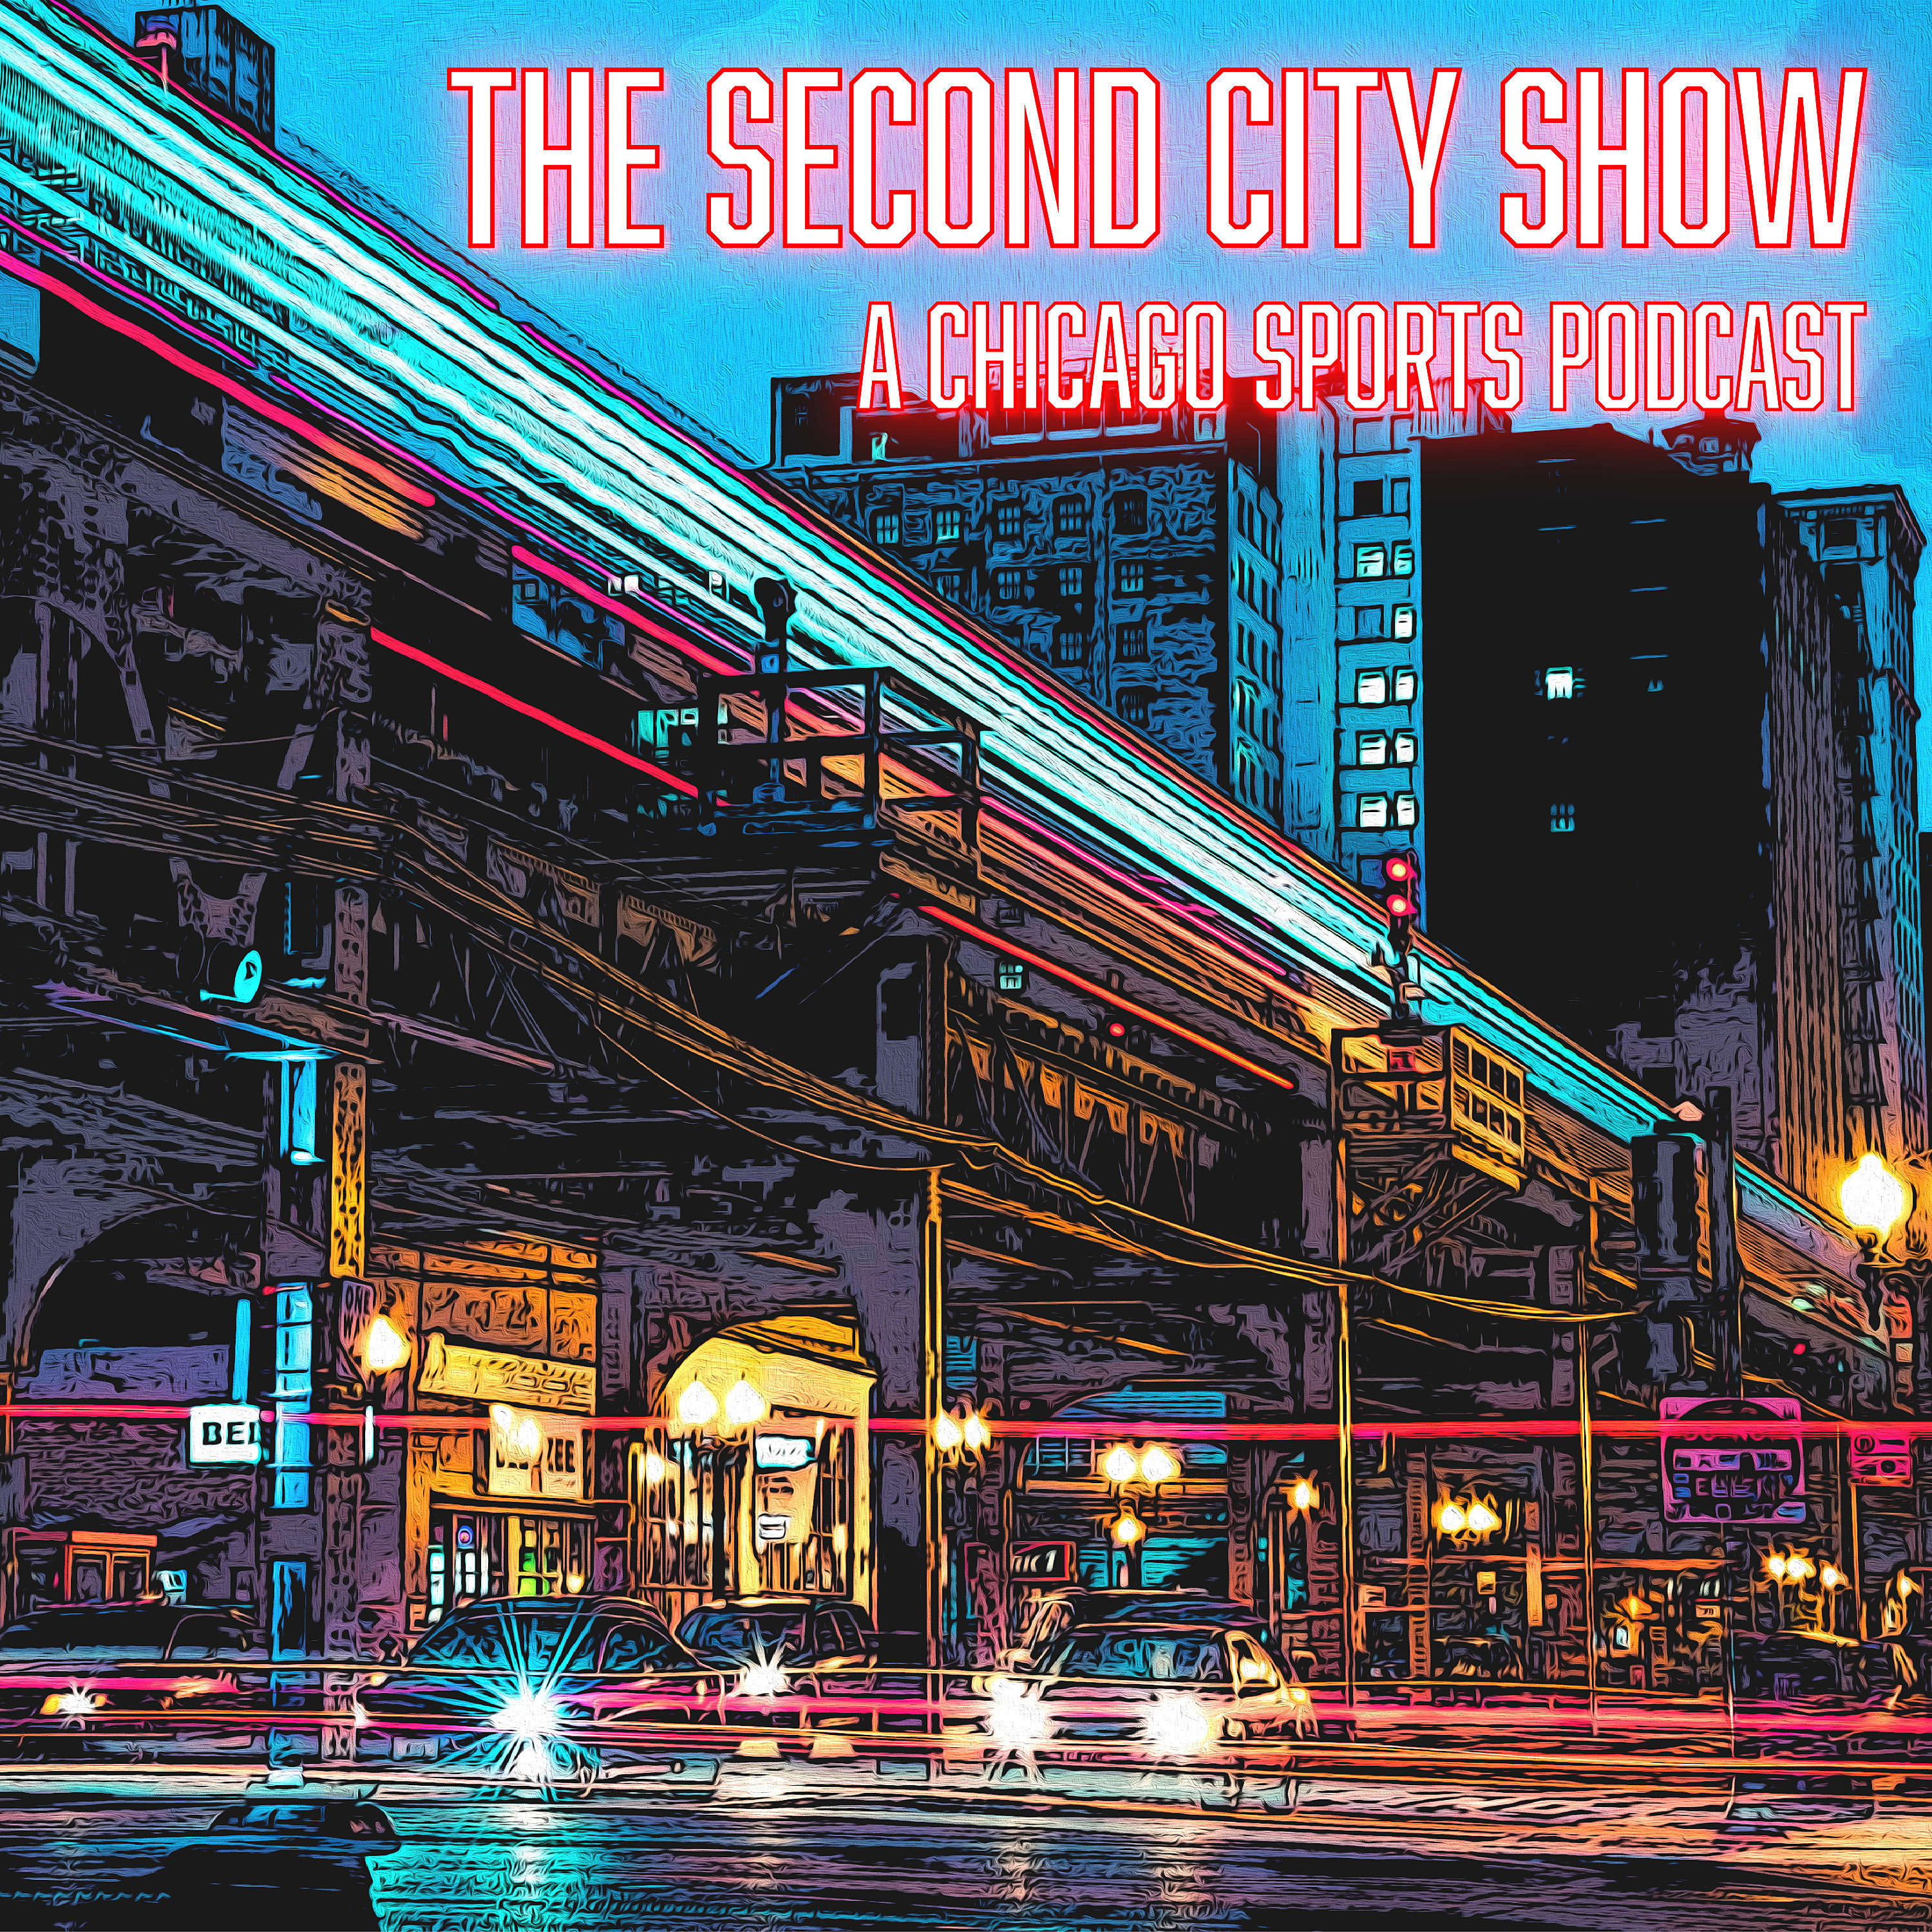 The Second City Show